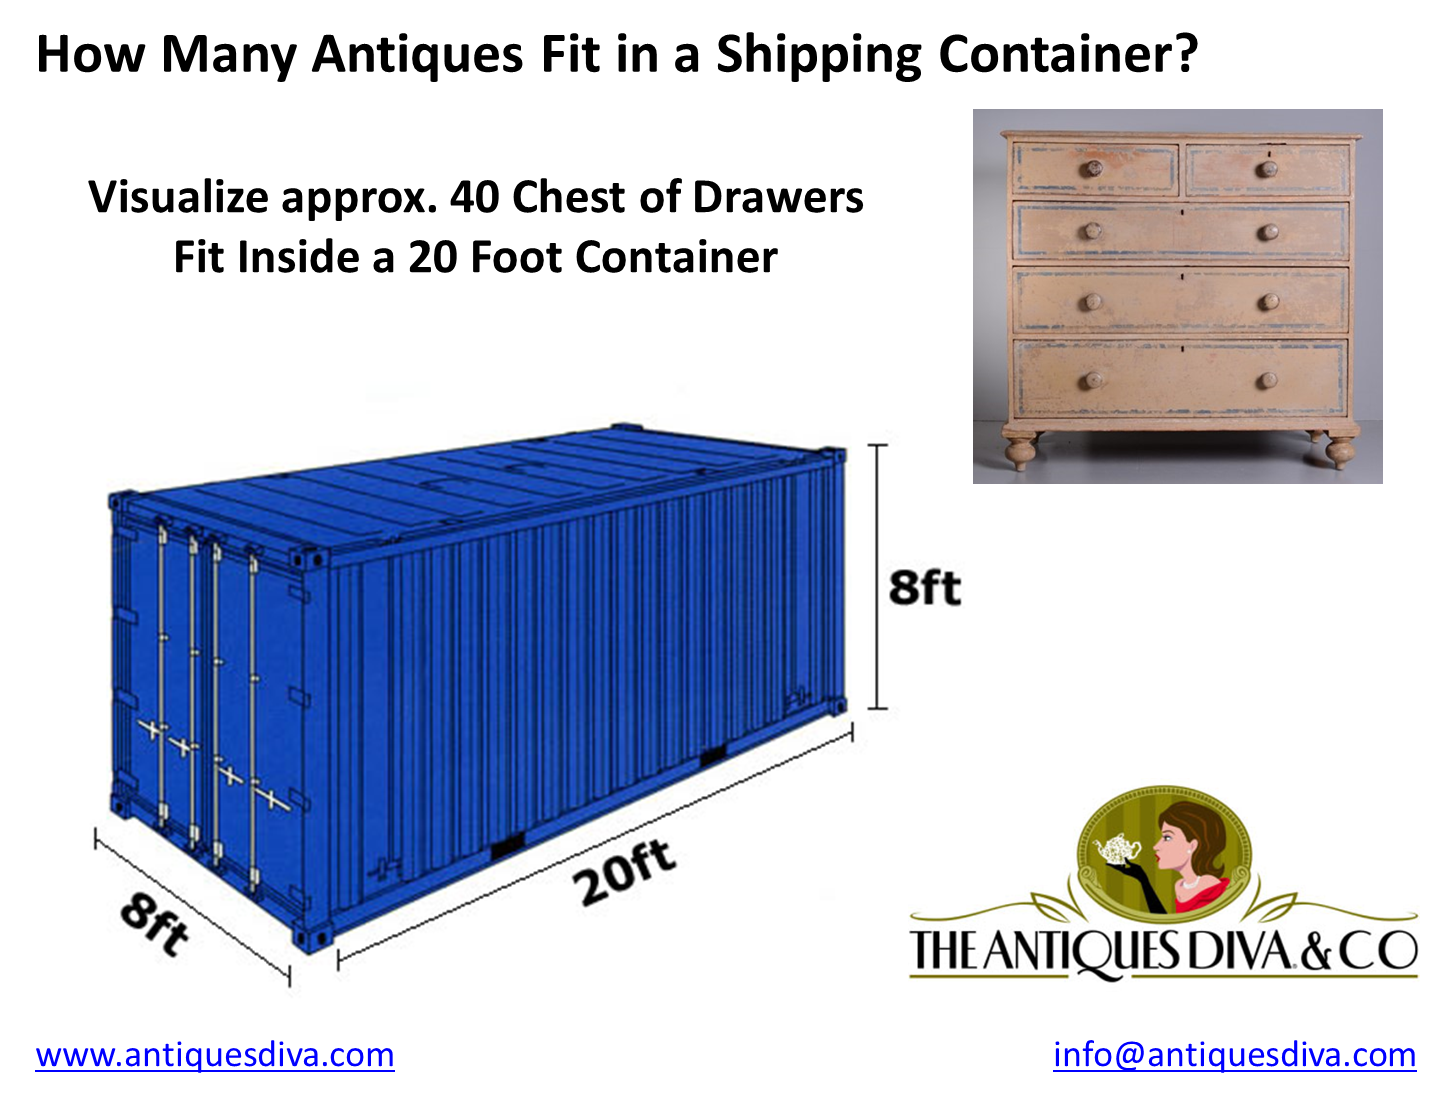 How Much Does It Cost to Fill a Container with Antiques, Filling a container, Shipping antiques from Europe, Antiques Diva Tours, Antiques Diva Buying Services, 20 ft container